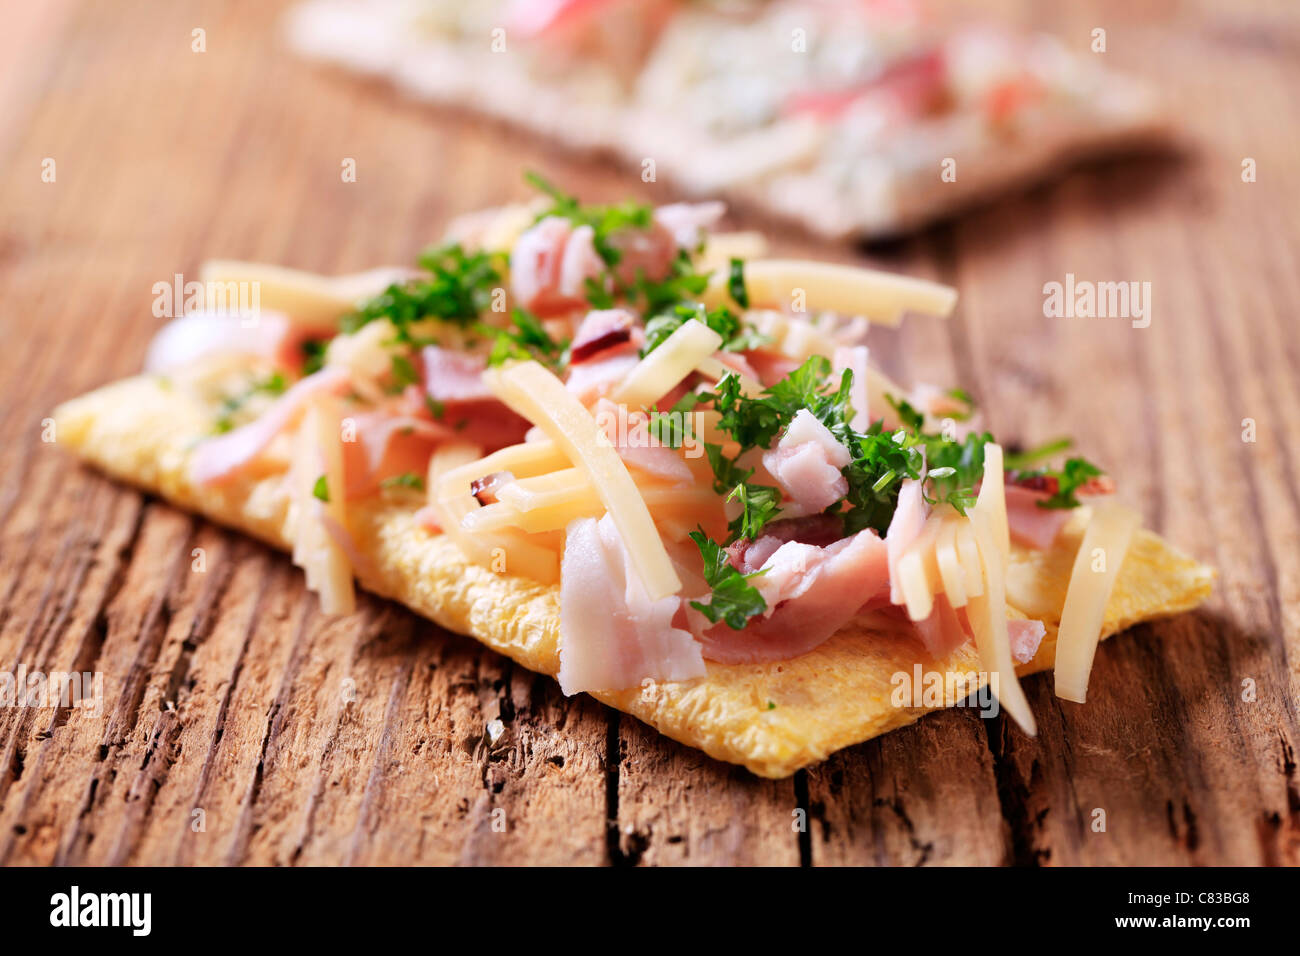 Crispbread with ham and cheese - closeup - Stock Image